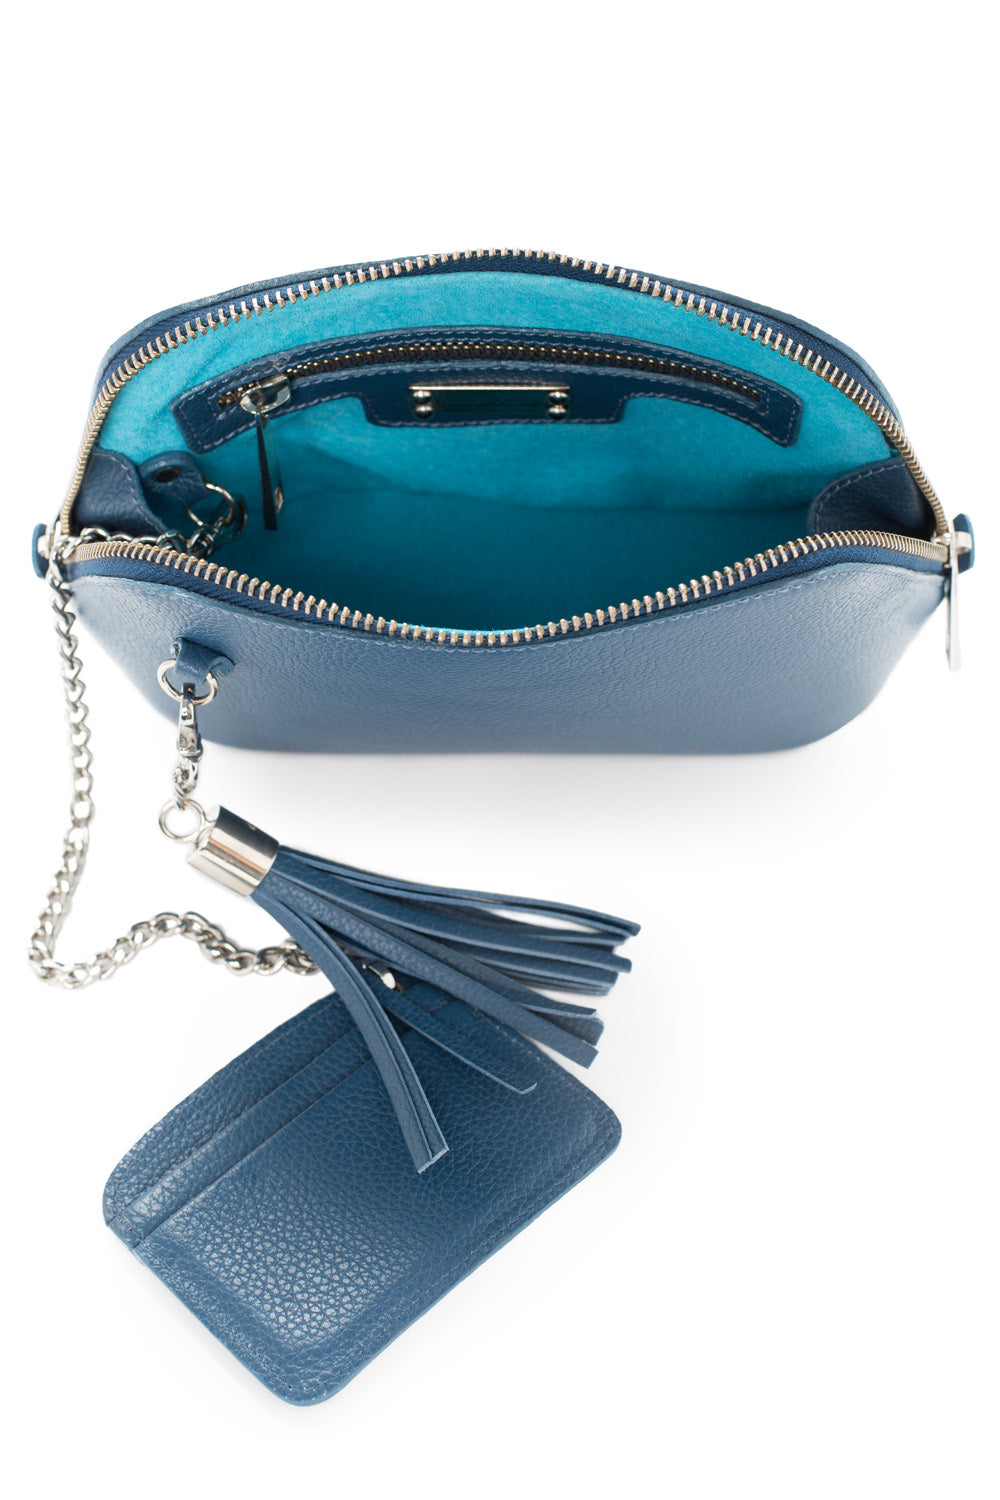 Denim Leather 'Watson Mini' Cross-Body & Clutch Bag | Mel Boteri | Interior View